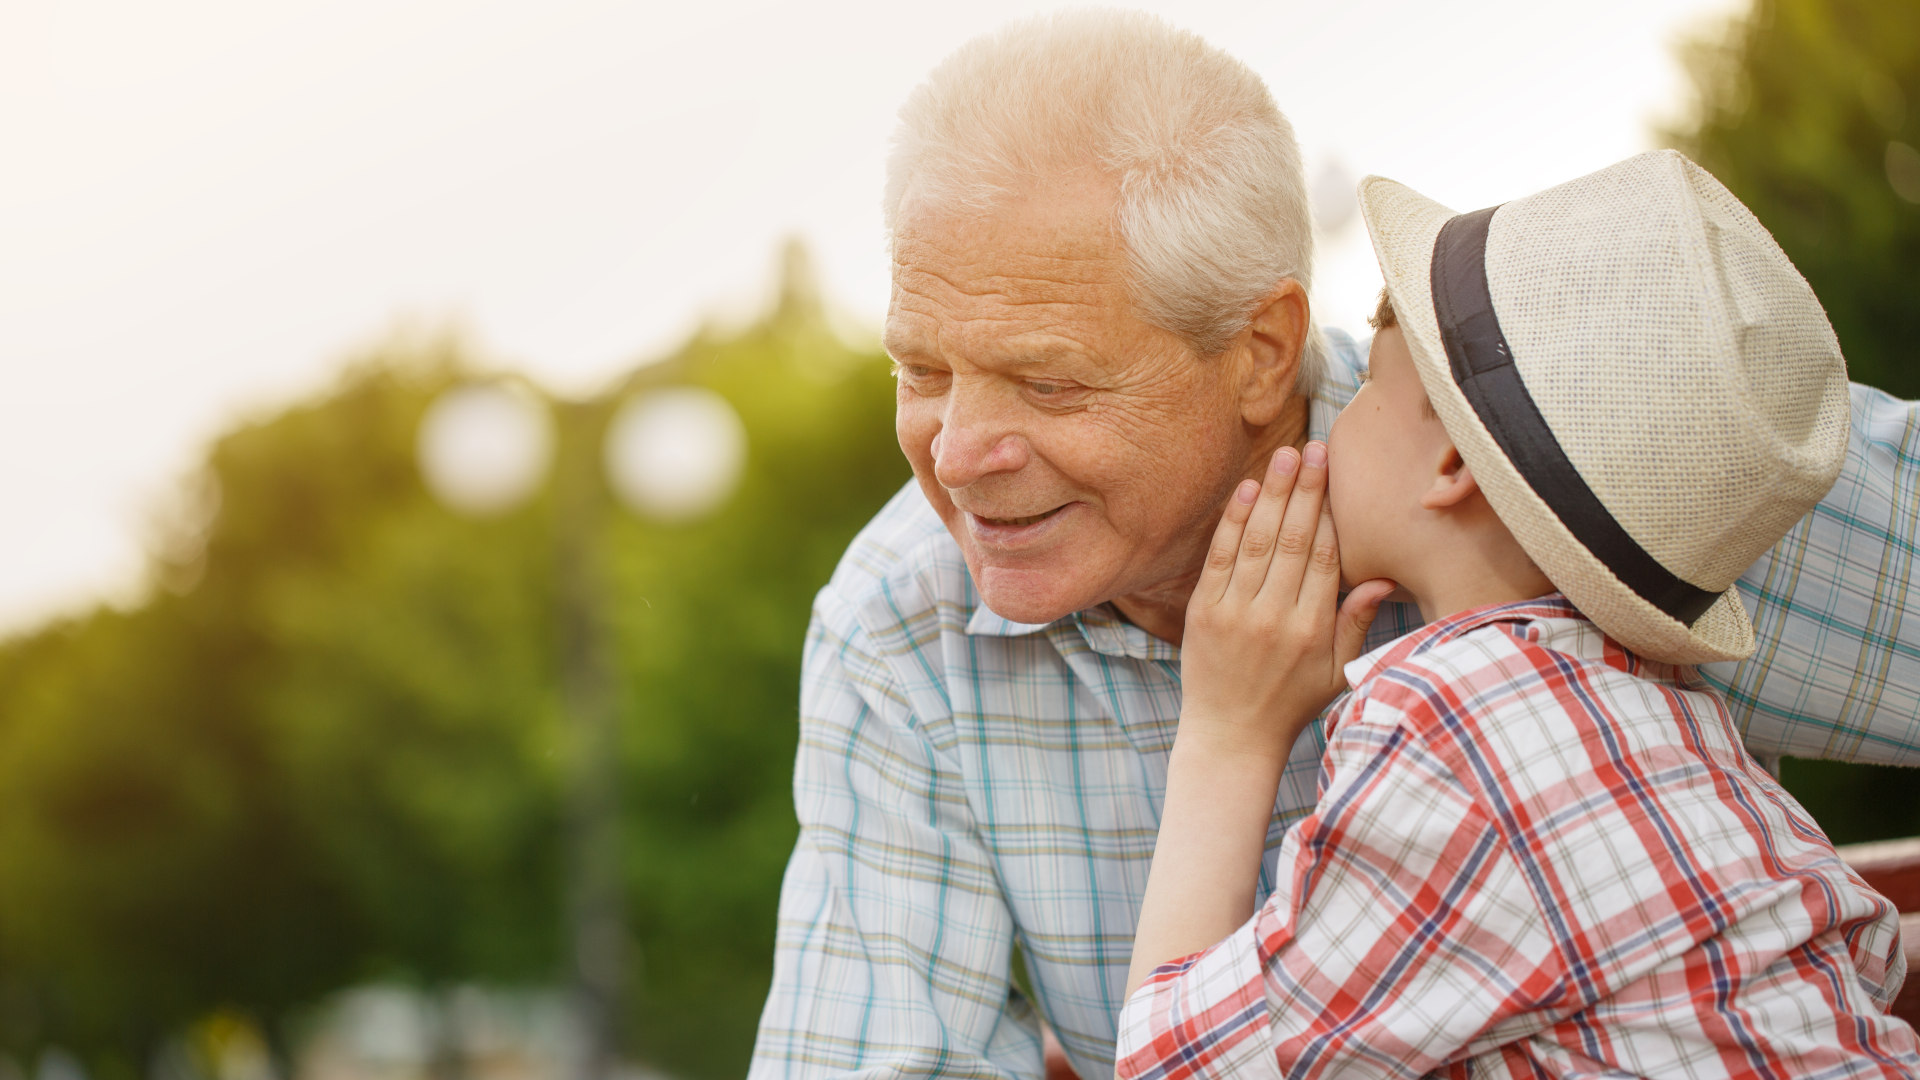 The Hearing Care Partnership Case Study